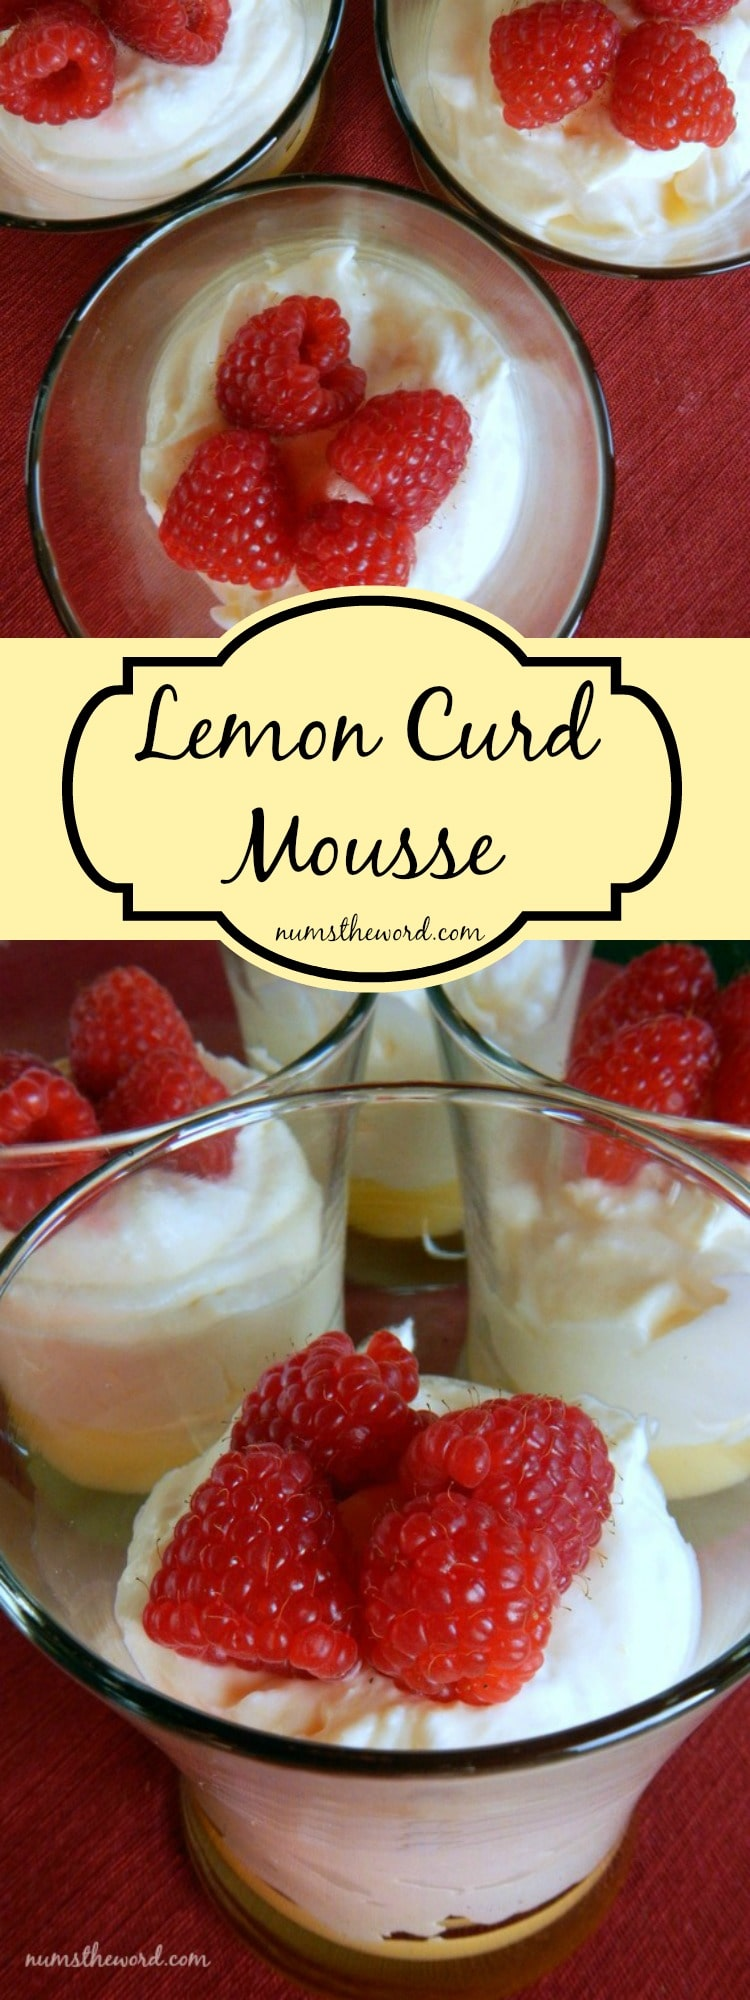 Lemon Curd Mousse LONG